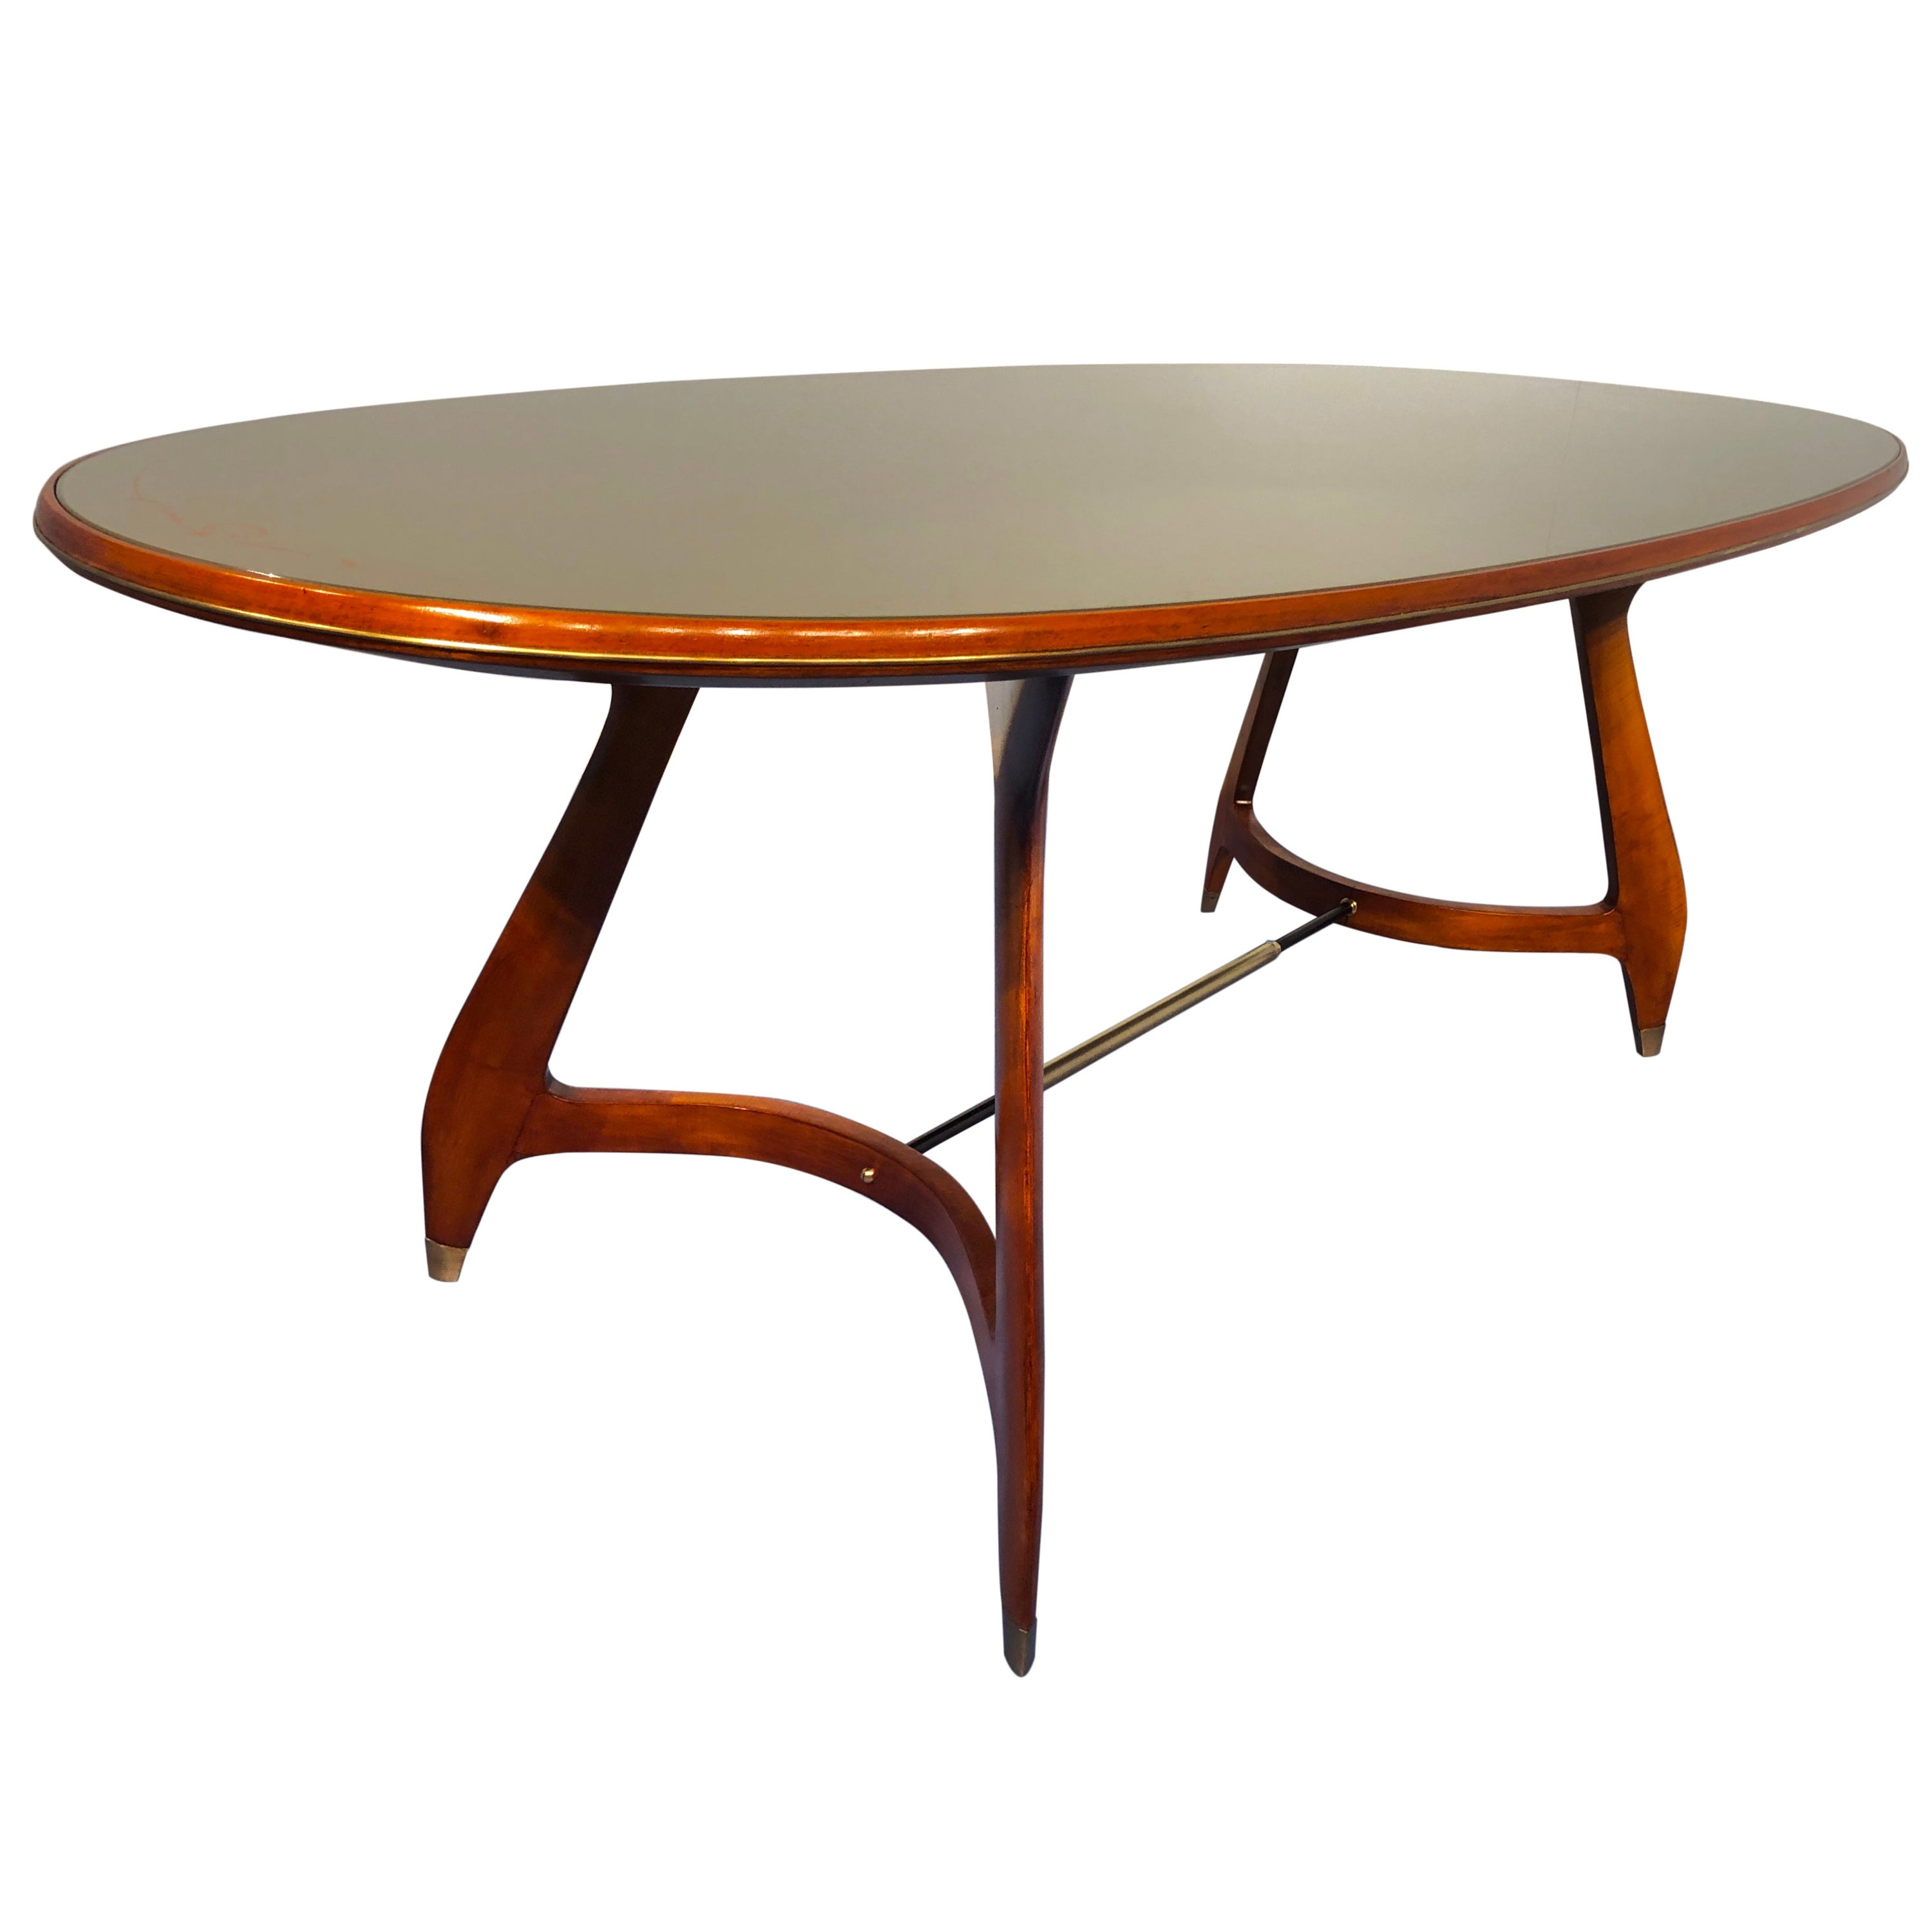 Italian Midcentury Dining Table by Augusto Romano, 1950s